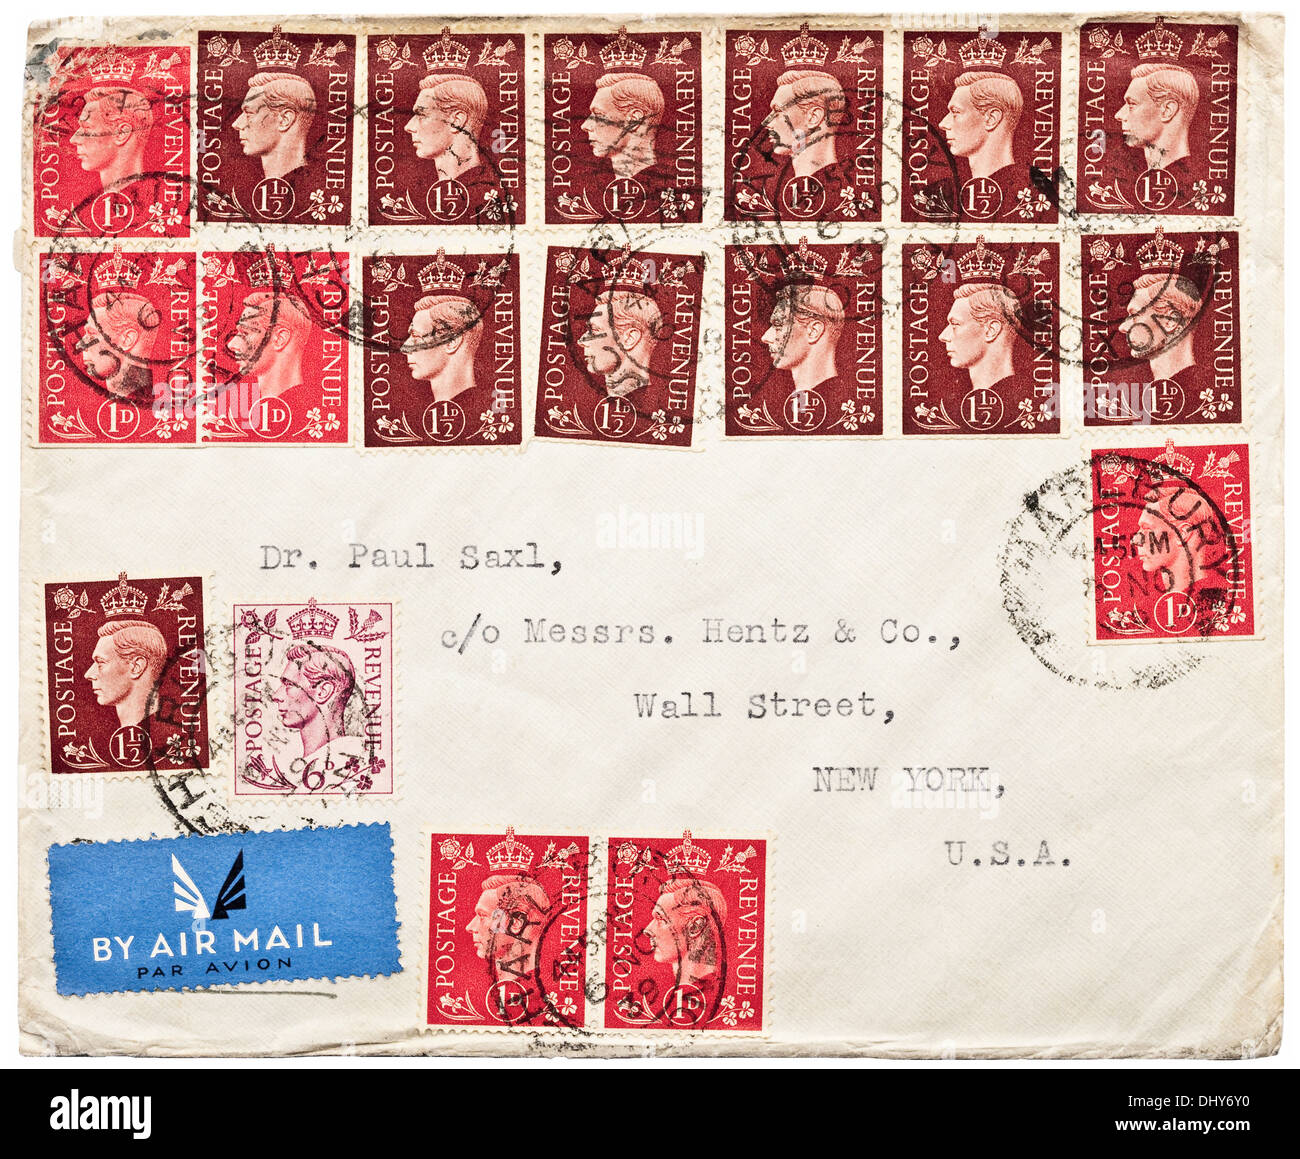 1939 British War Time Air Mail Envelope With 2 6d Of Multiple King